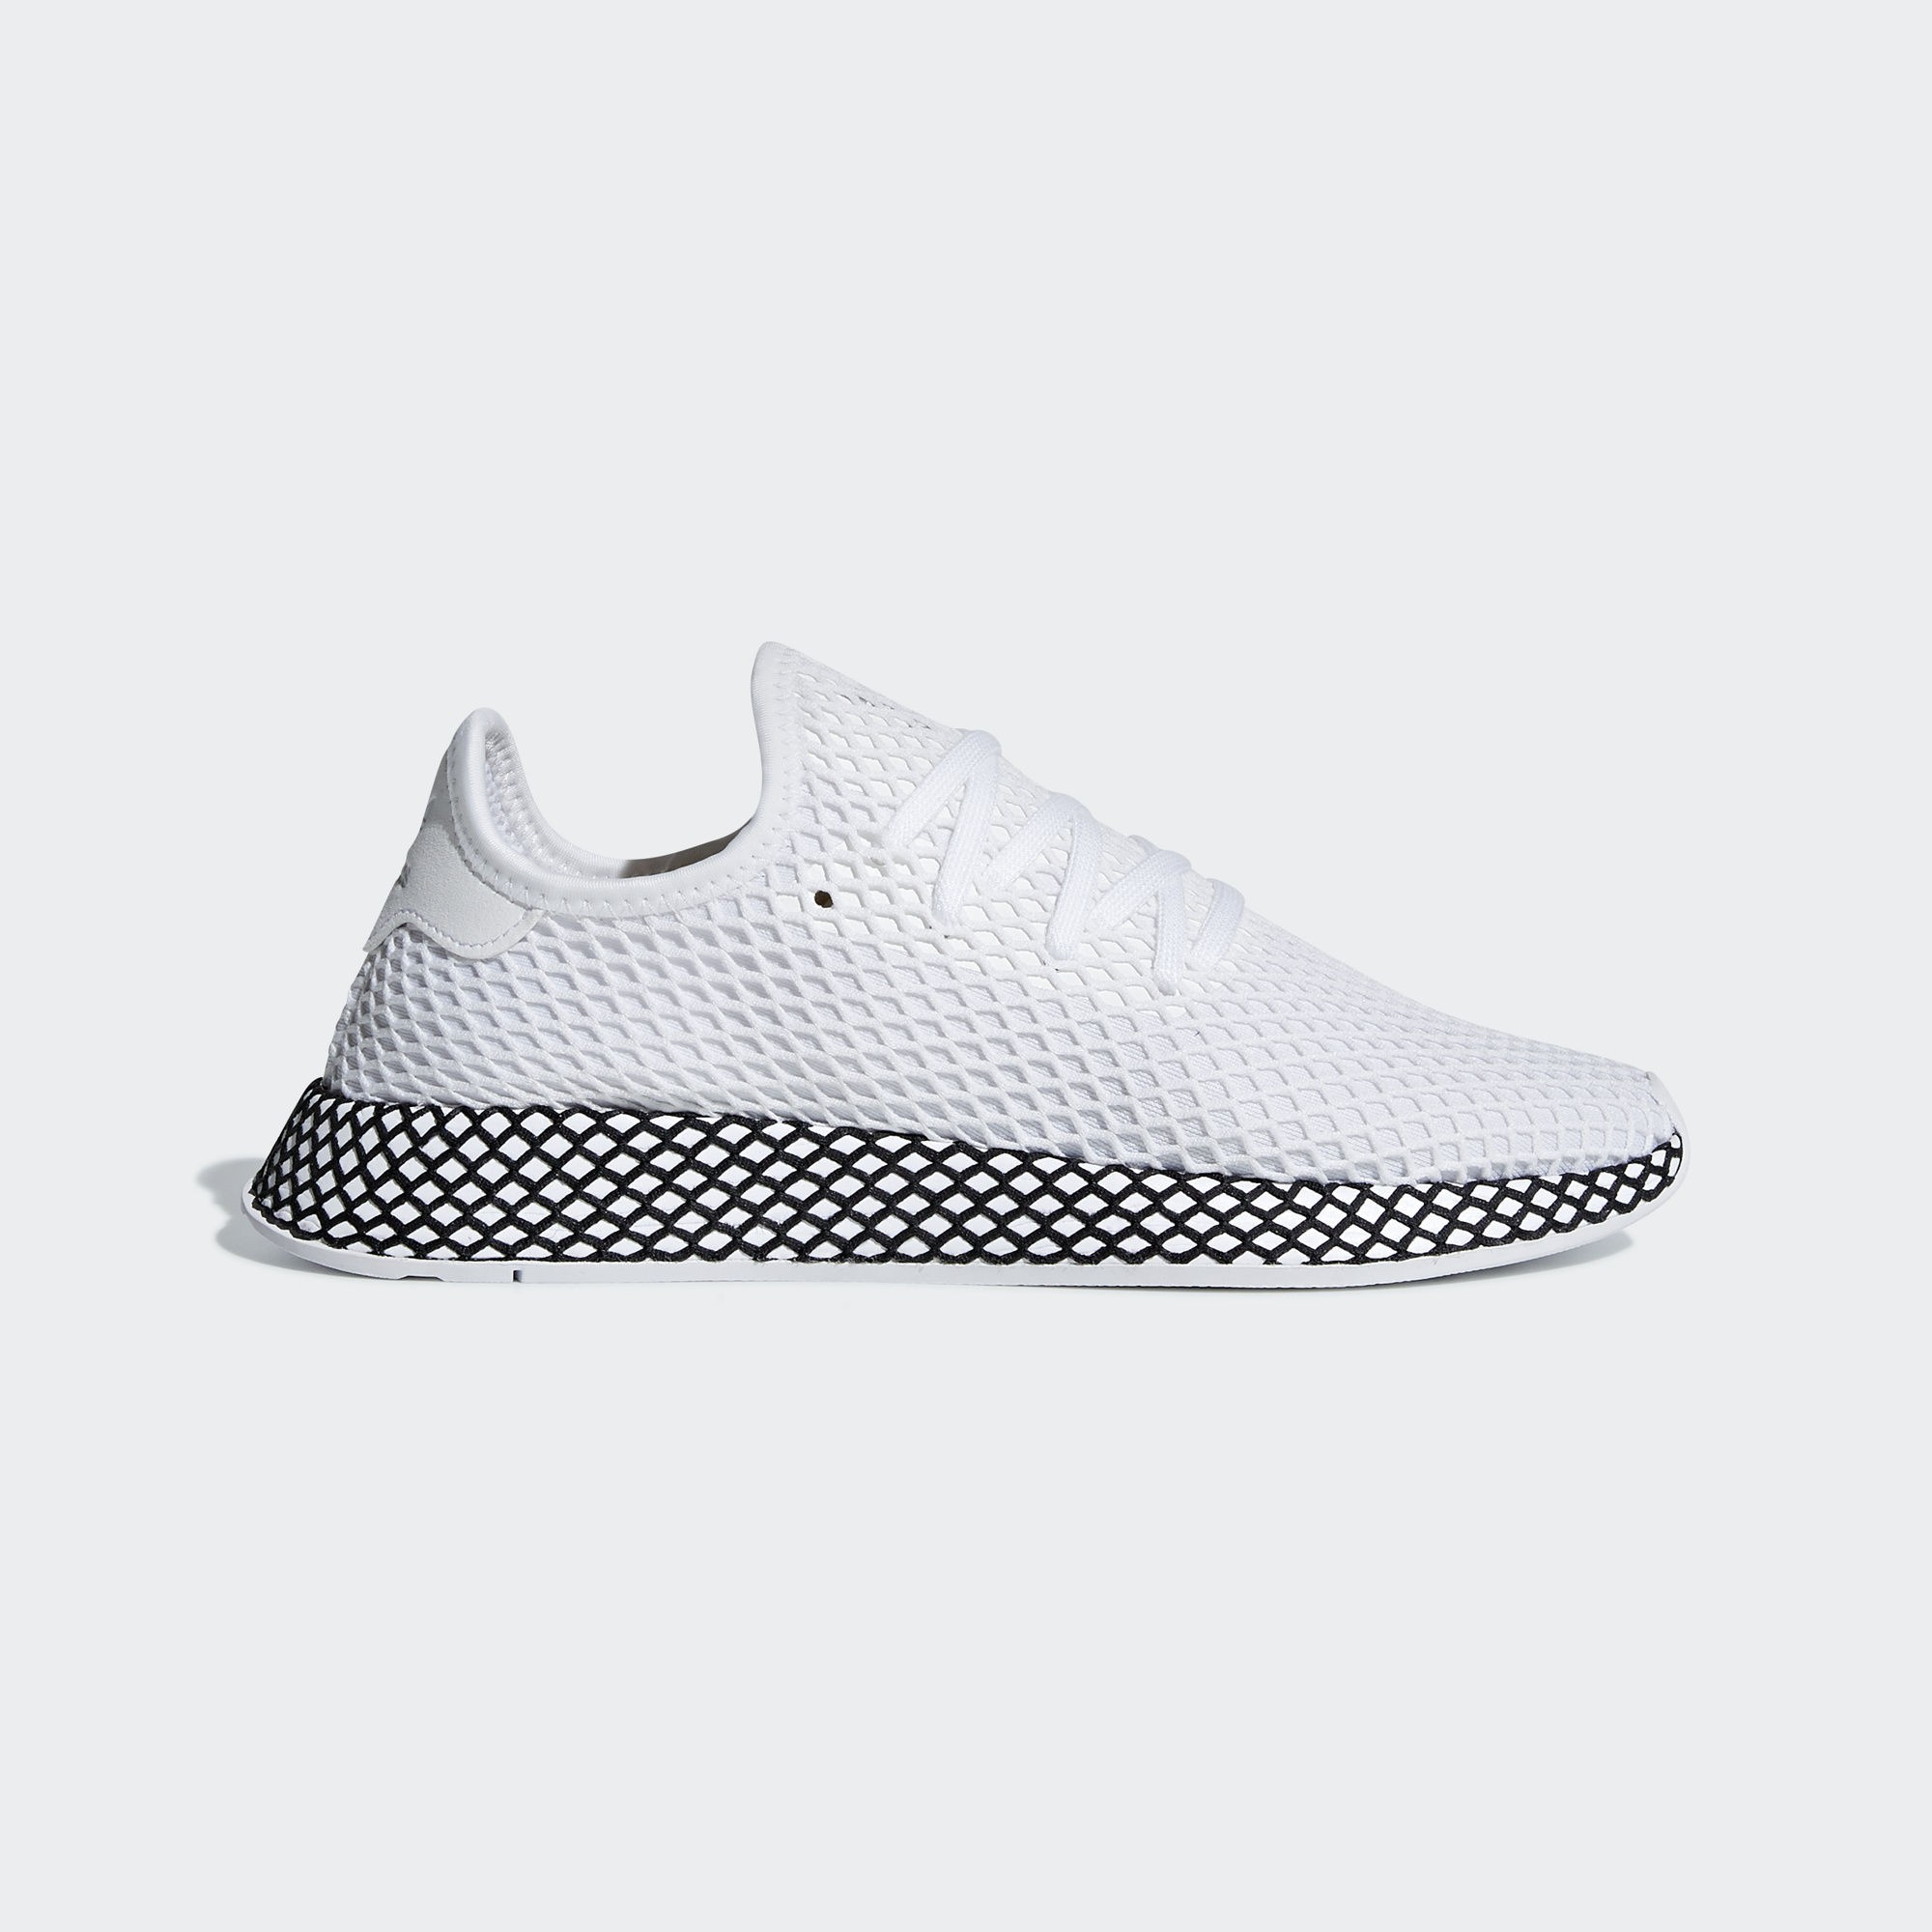 Adidas Originals Deerupt Runner B41767